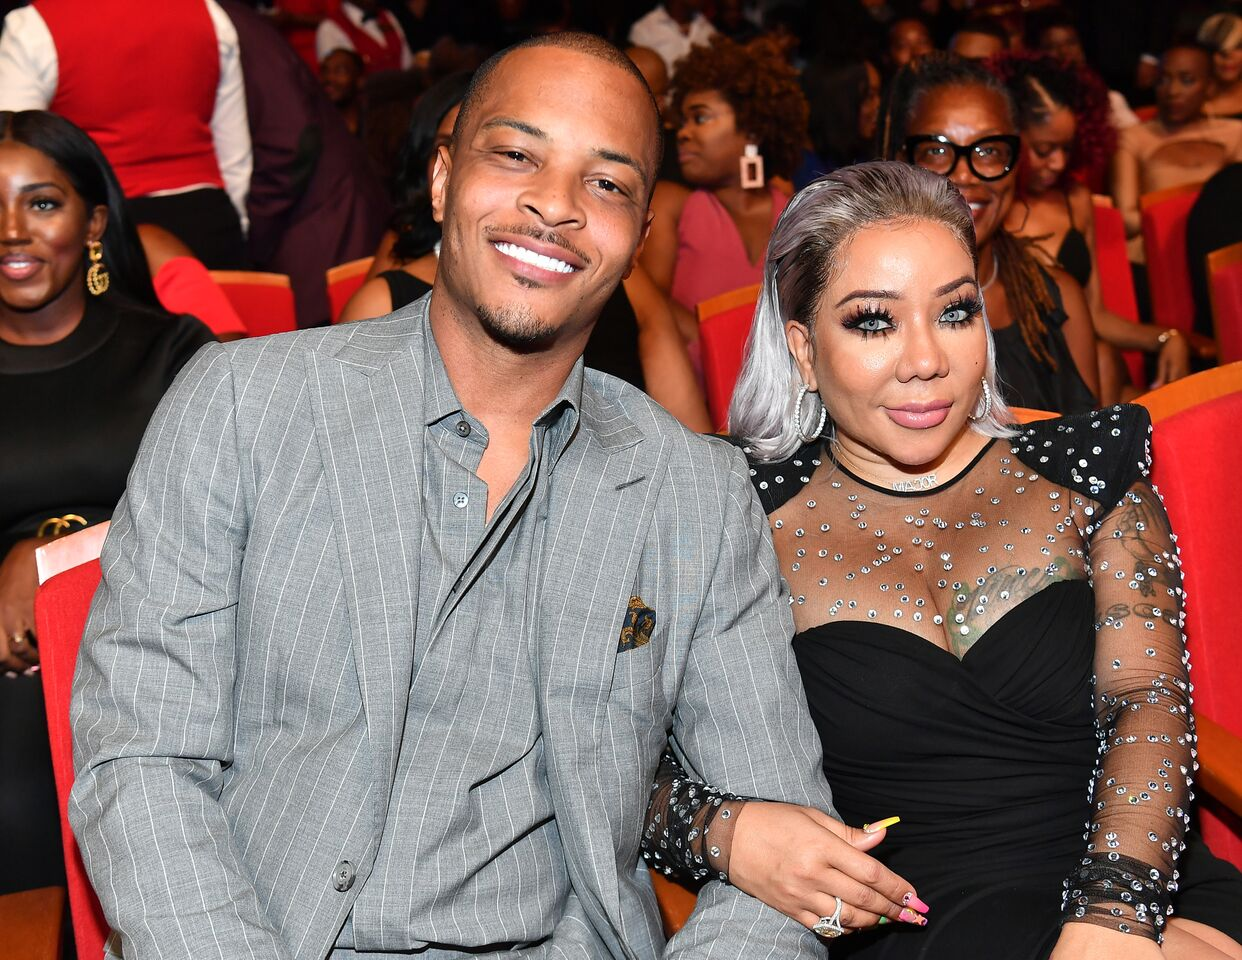 T.I. and Tameka Harris/ Source: Getty Images